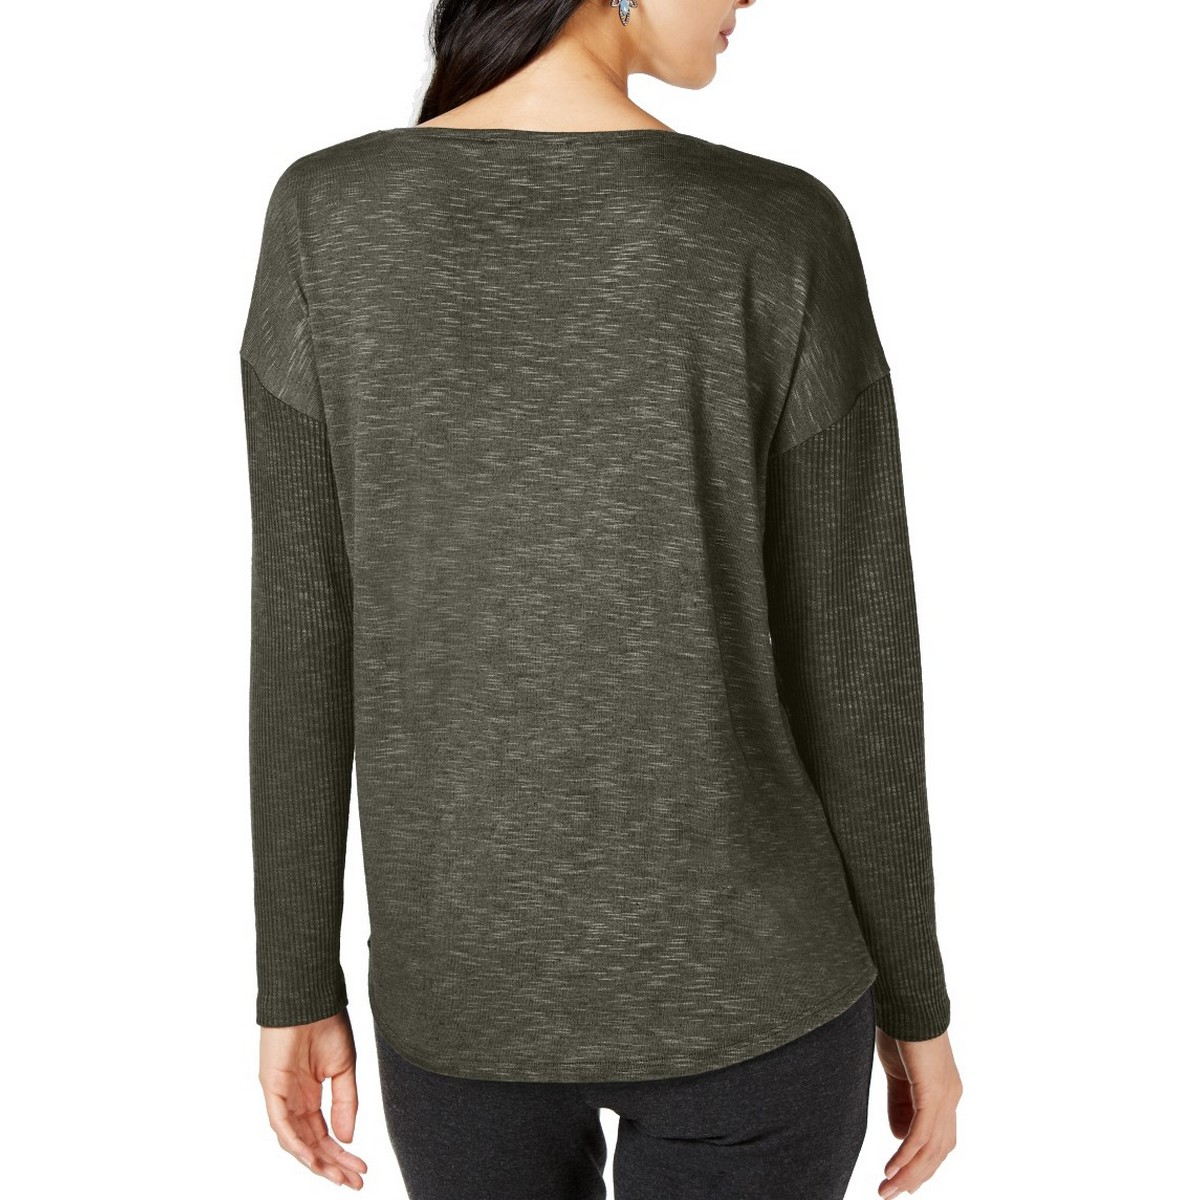 INC-NEW-Women-039-s-Long-Sleeve-Mixed-media-Knit-Casual-Shirt-Top-TEDO thumbnail 6